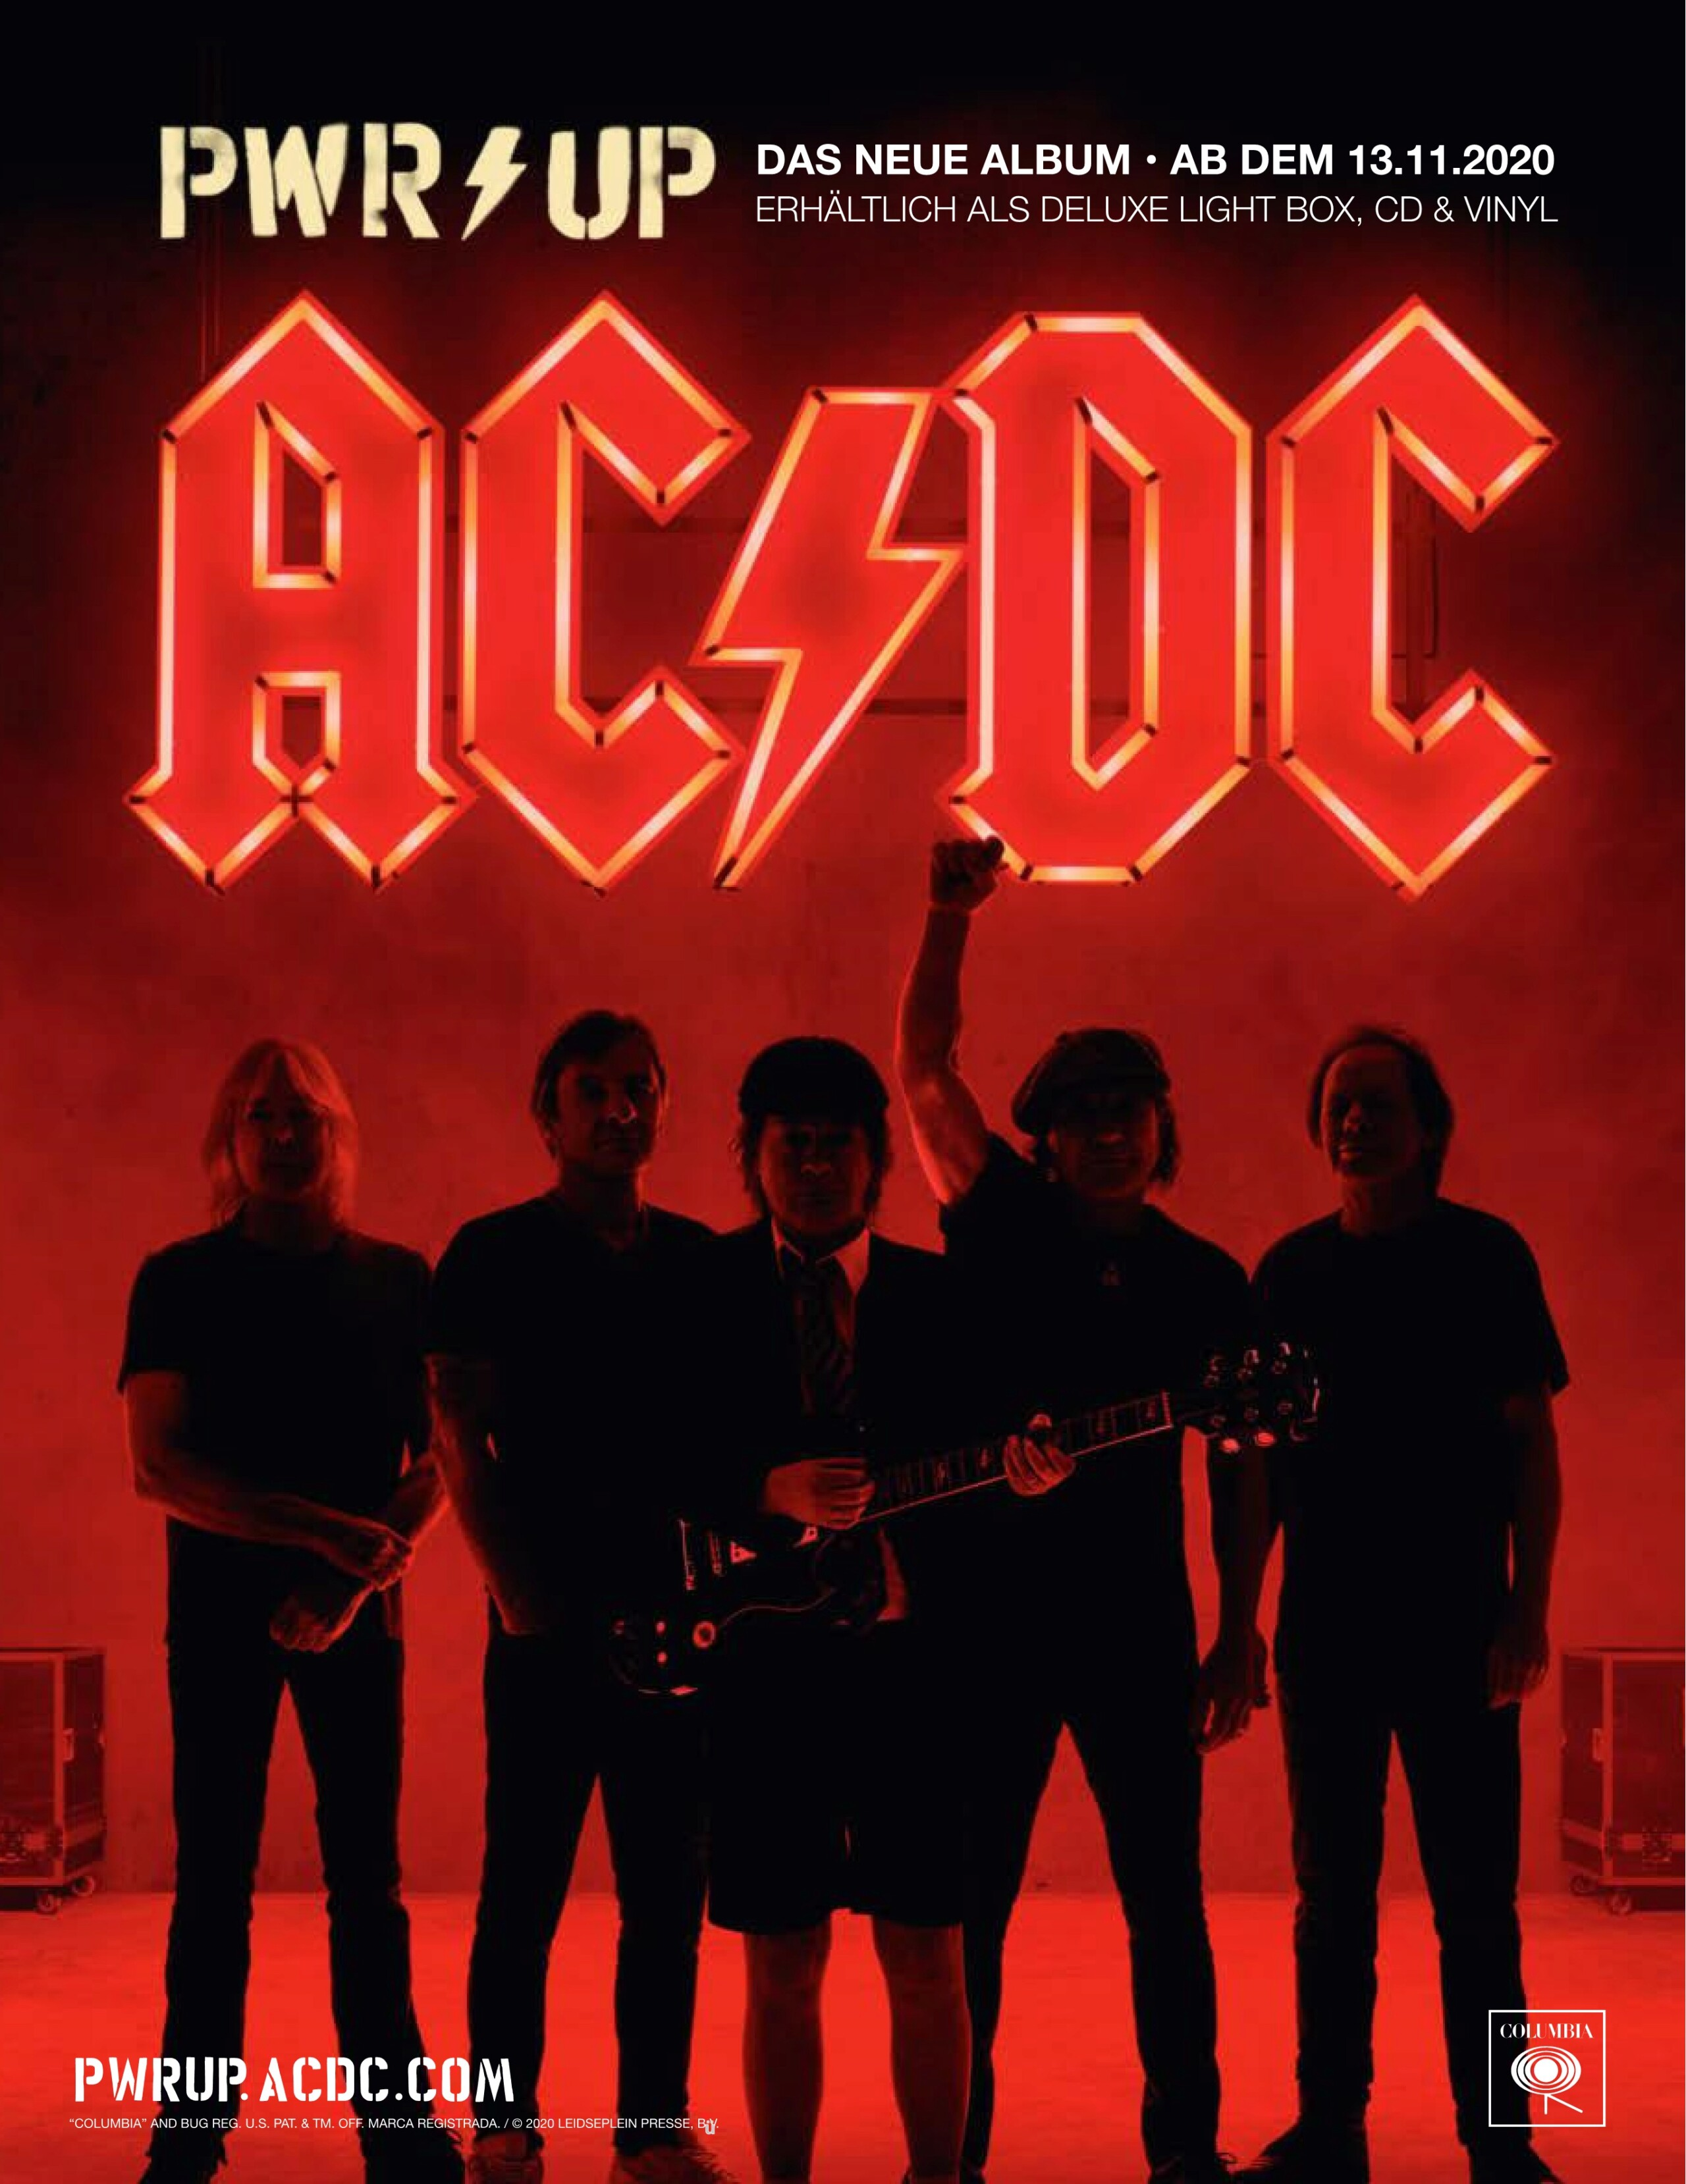 ACDC Power Up (2020) Hard-Rock Australie - Page 2 Rllng_10